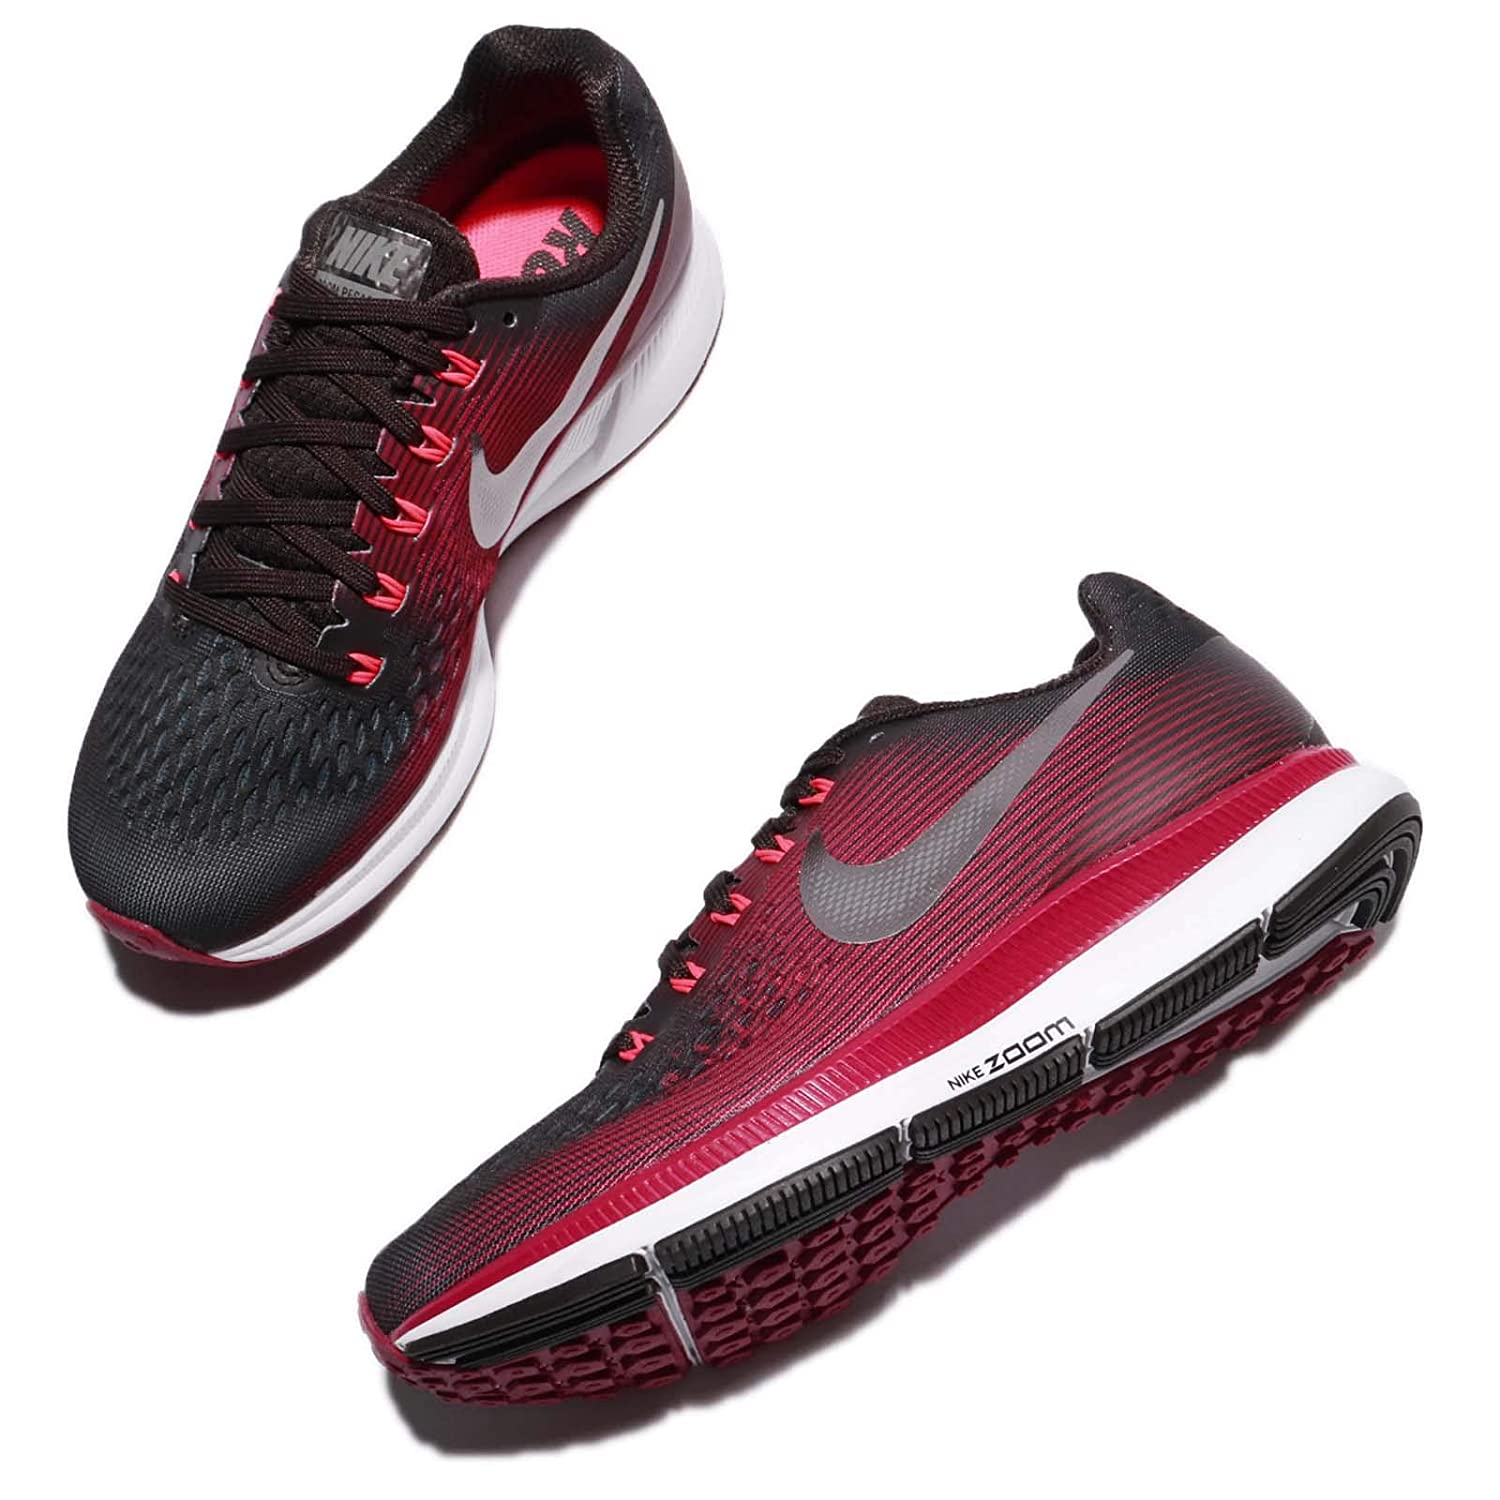 89dec64742875 Nike Women s Air Zoom Pegasus 34 Running Shoe (Gem) Shadow Brown Metallic  Pewter Rush Maroon Size 9.5 M US  Amazon.in  Shoes   Handbags